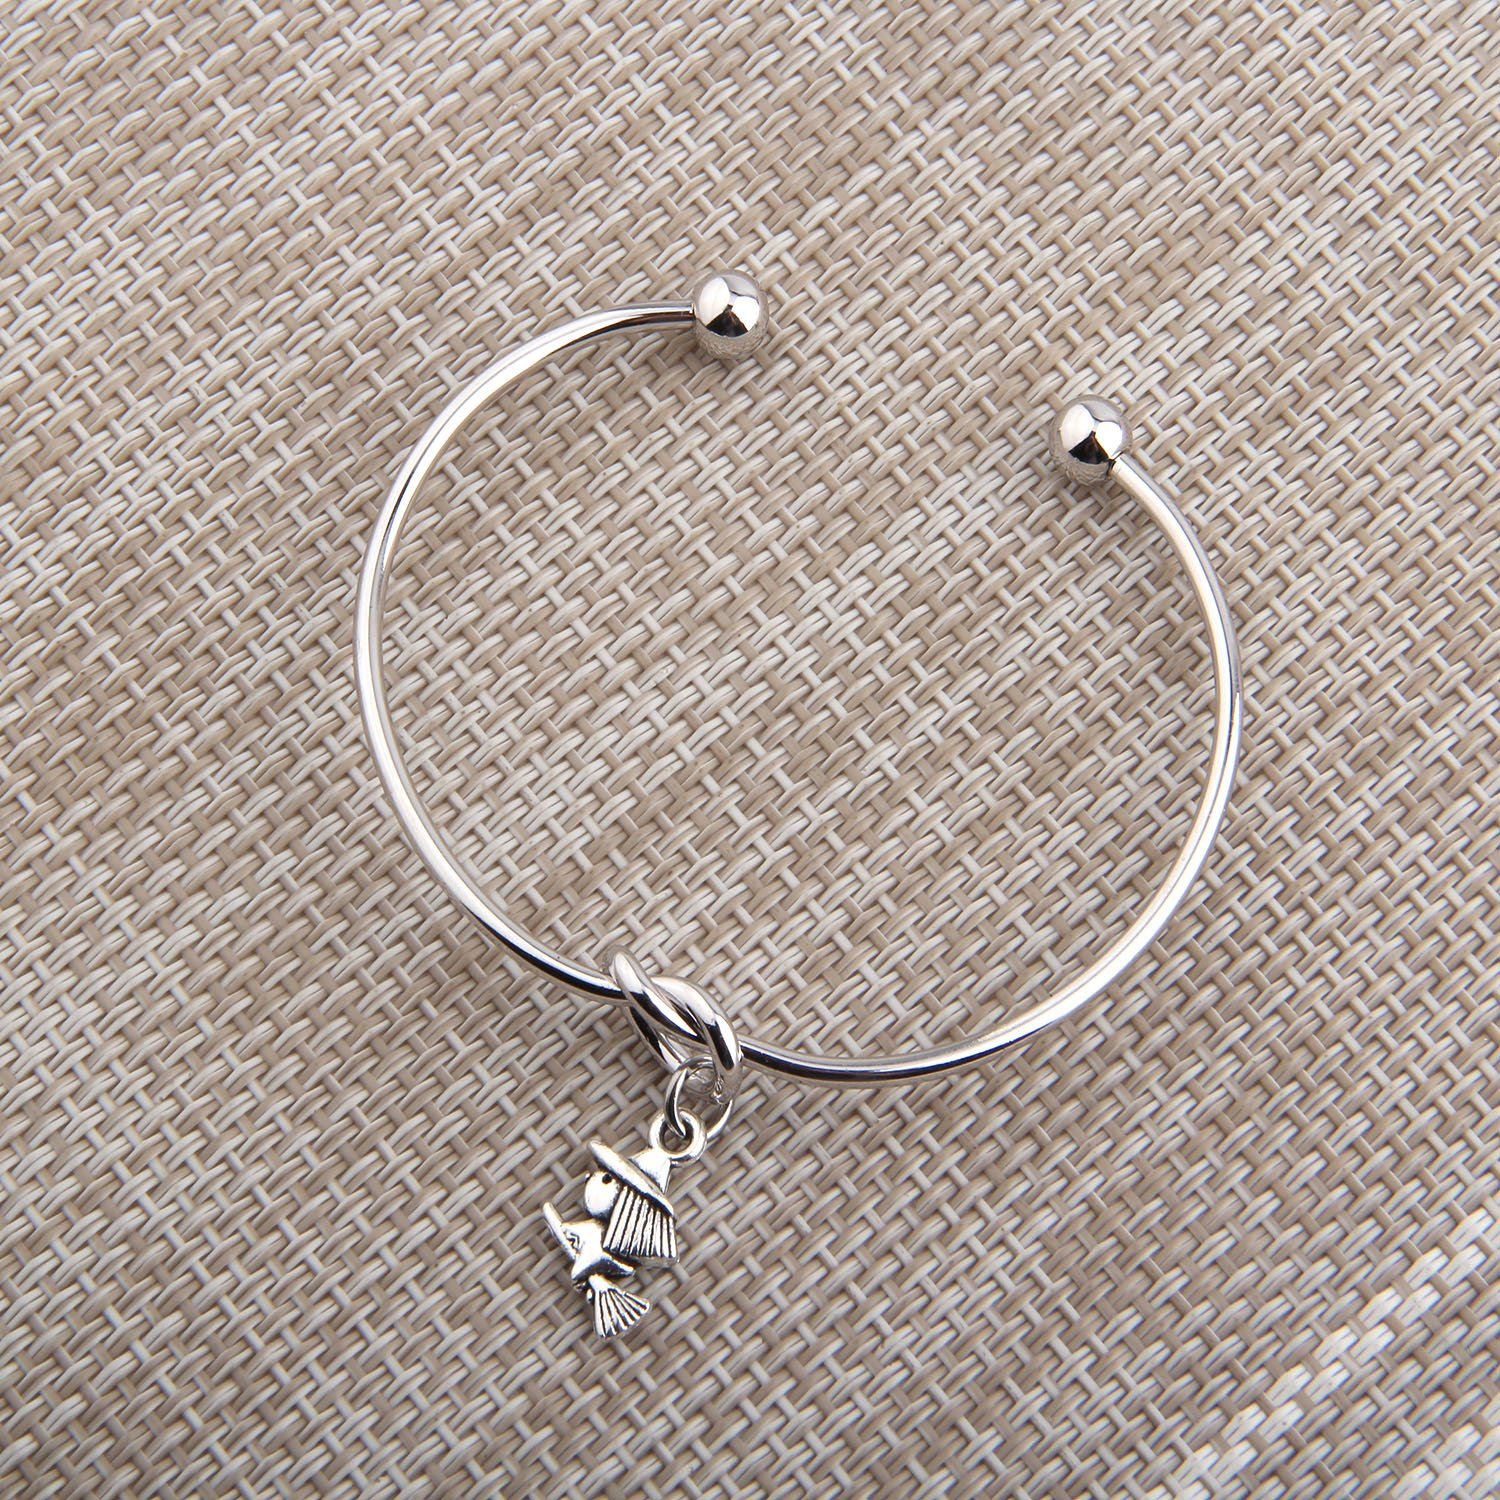 PLITI Witch Fairy Tale Charm Knot Cuff Bangle Bracelet Halloween Jewelry Gift for Her